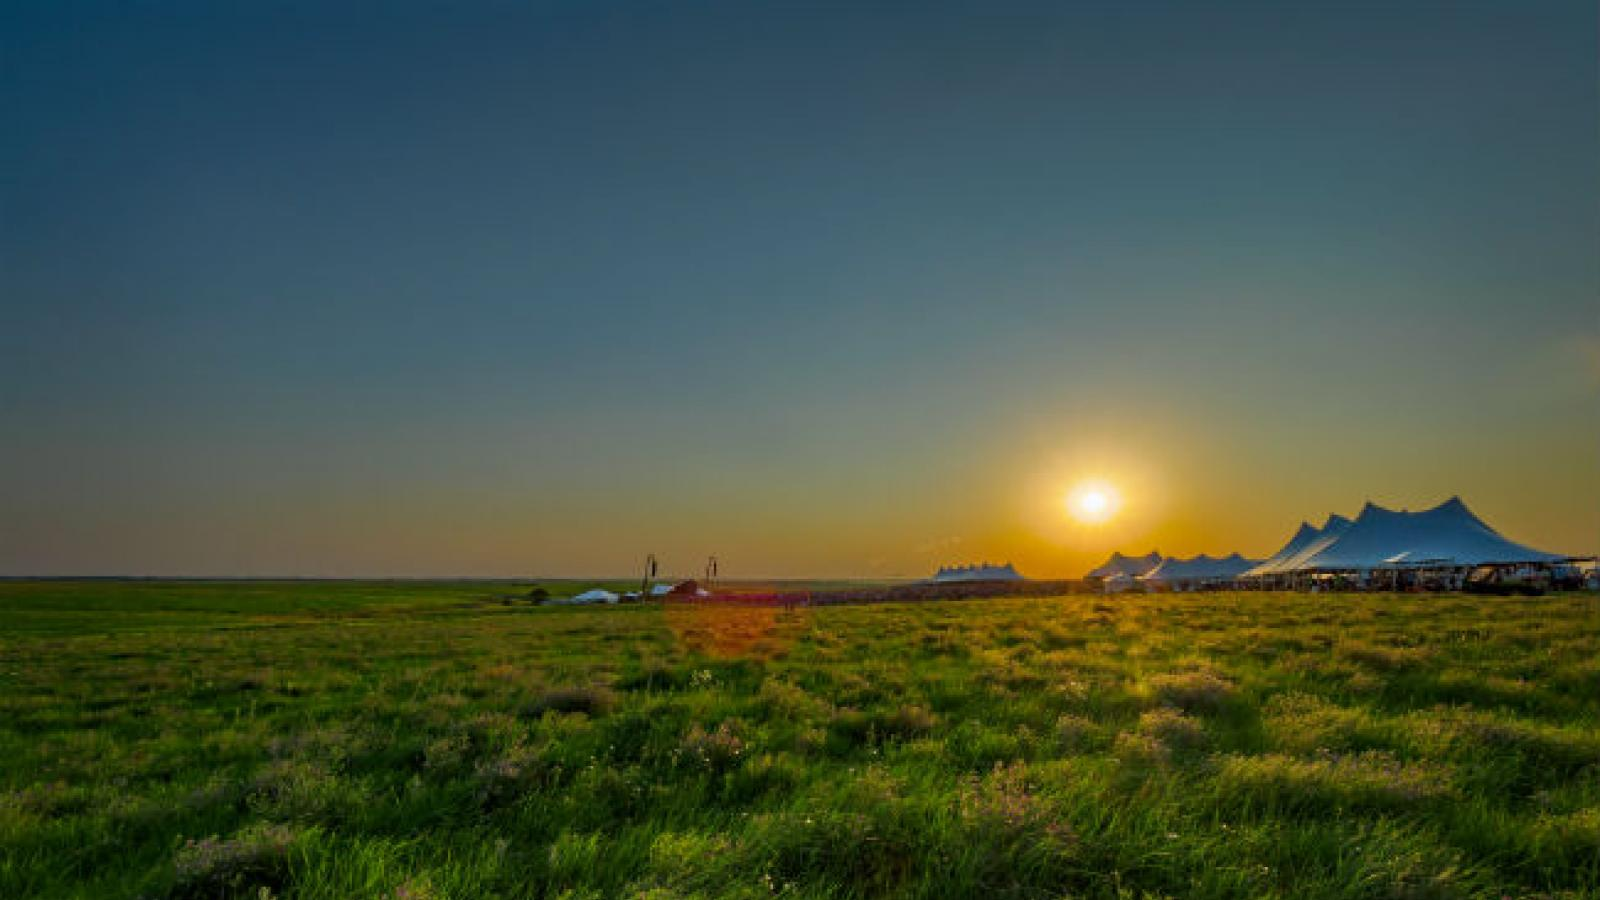 White tents at sunsets in middle of Kansas grassland prairie